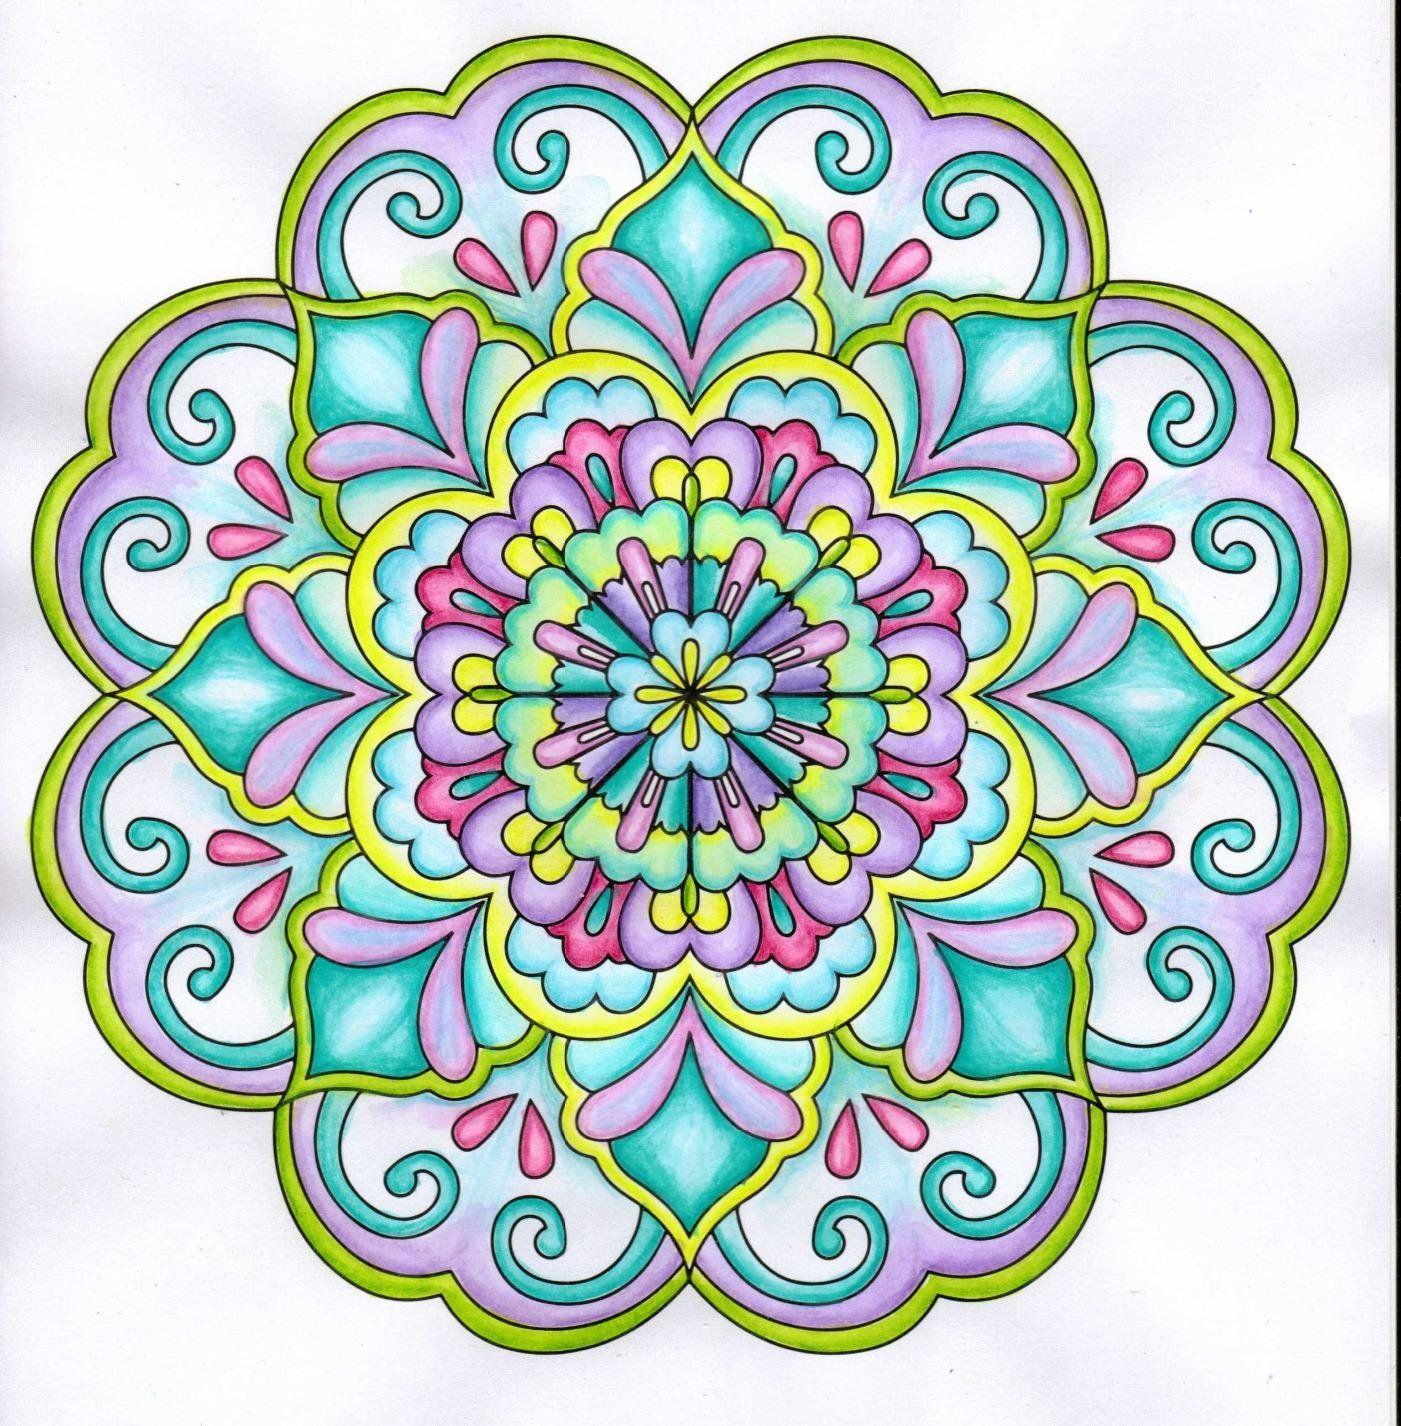 Mandala Coloring Book For Adults With Thick Artist Quality Paper Hardback Covers And Spiral Bi Mandala Coloring Books Mandala Coloring Mandala Coloring Pages